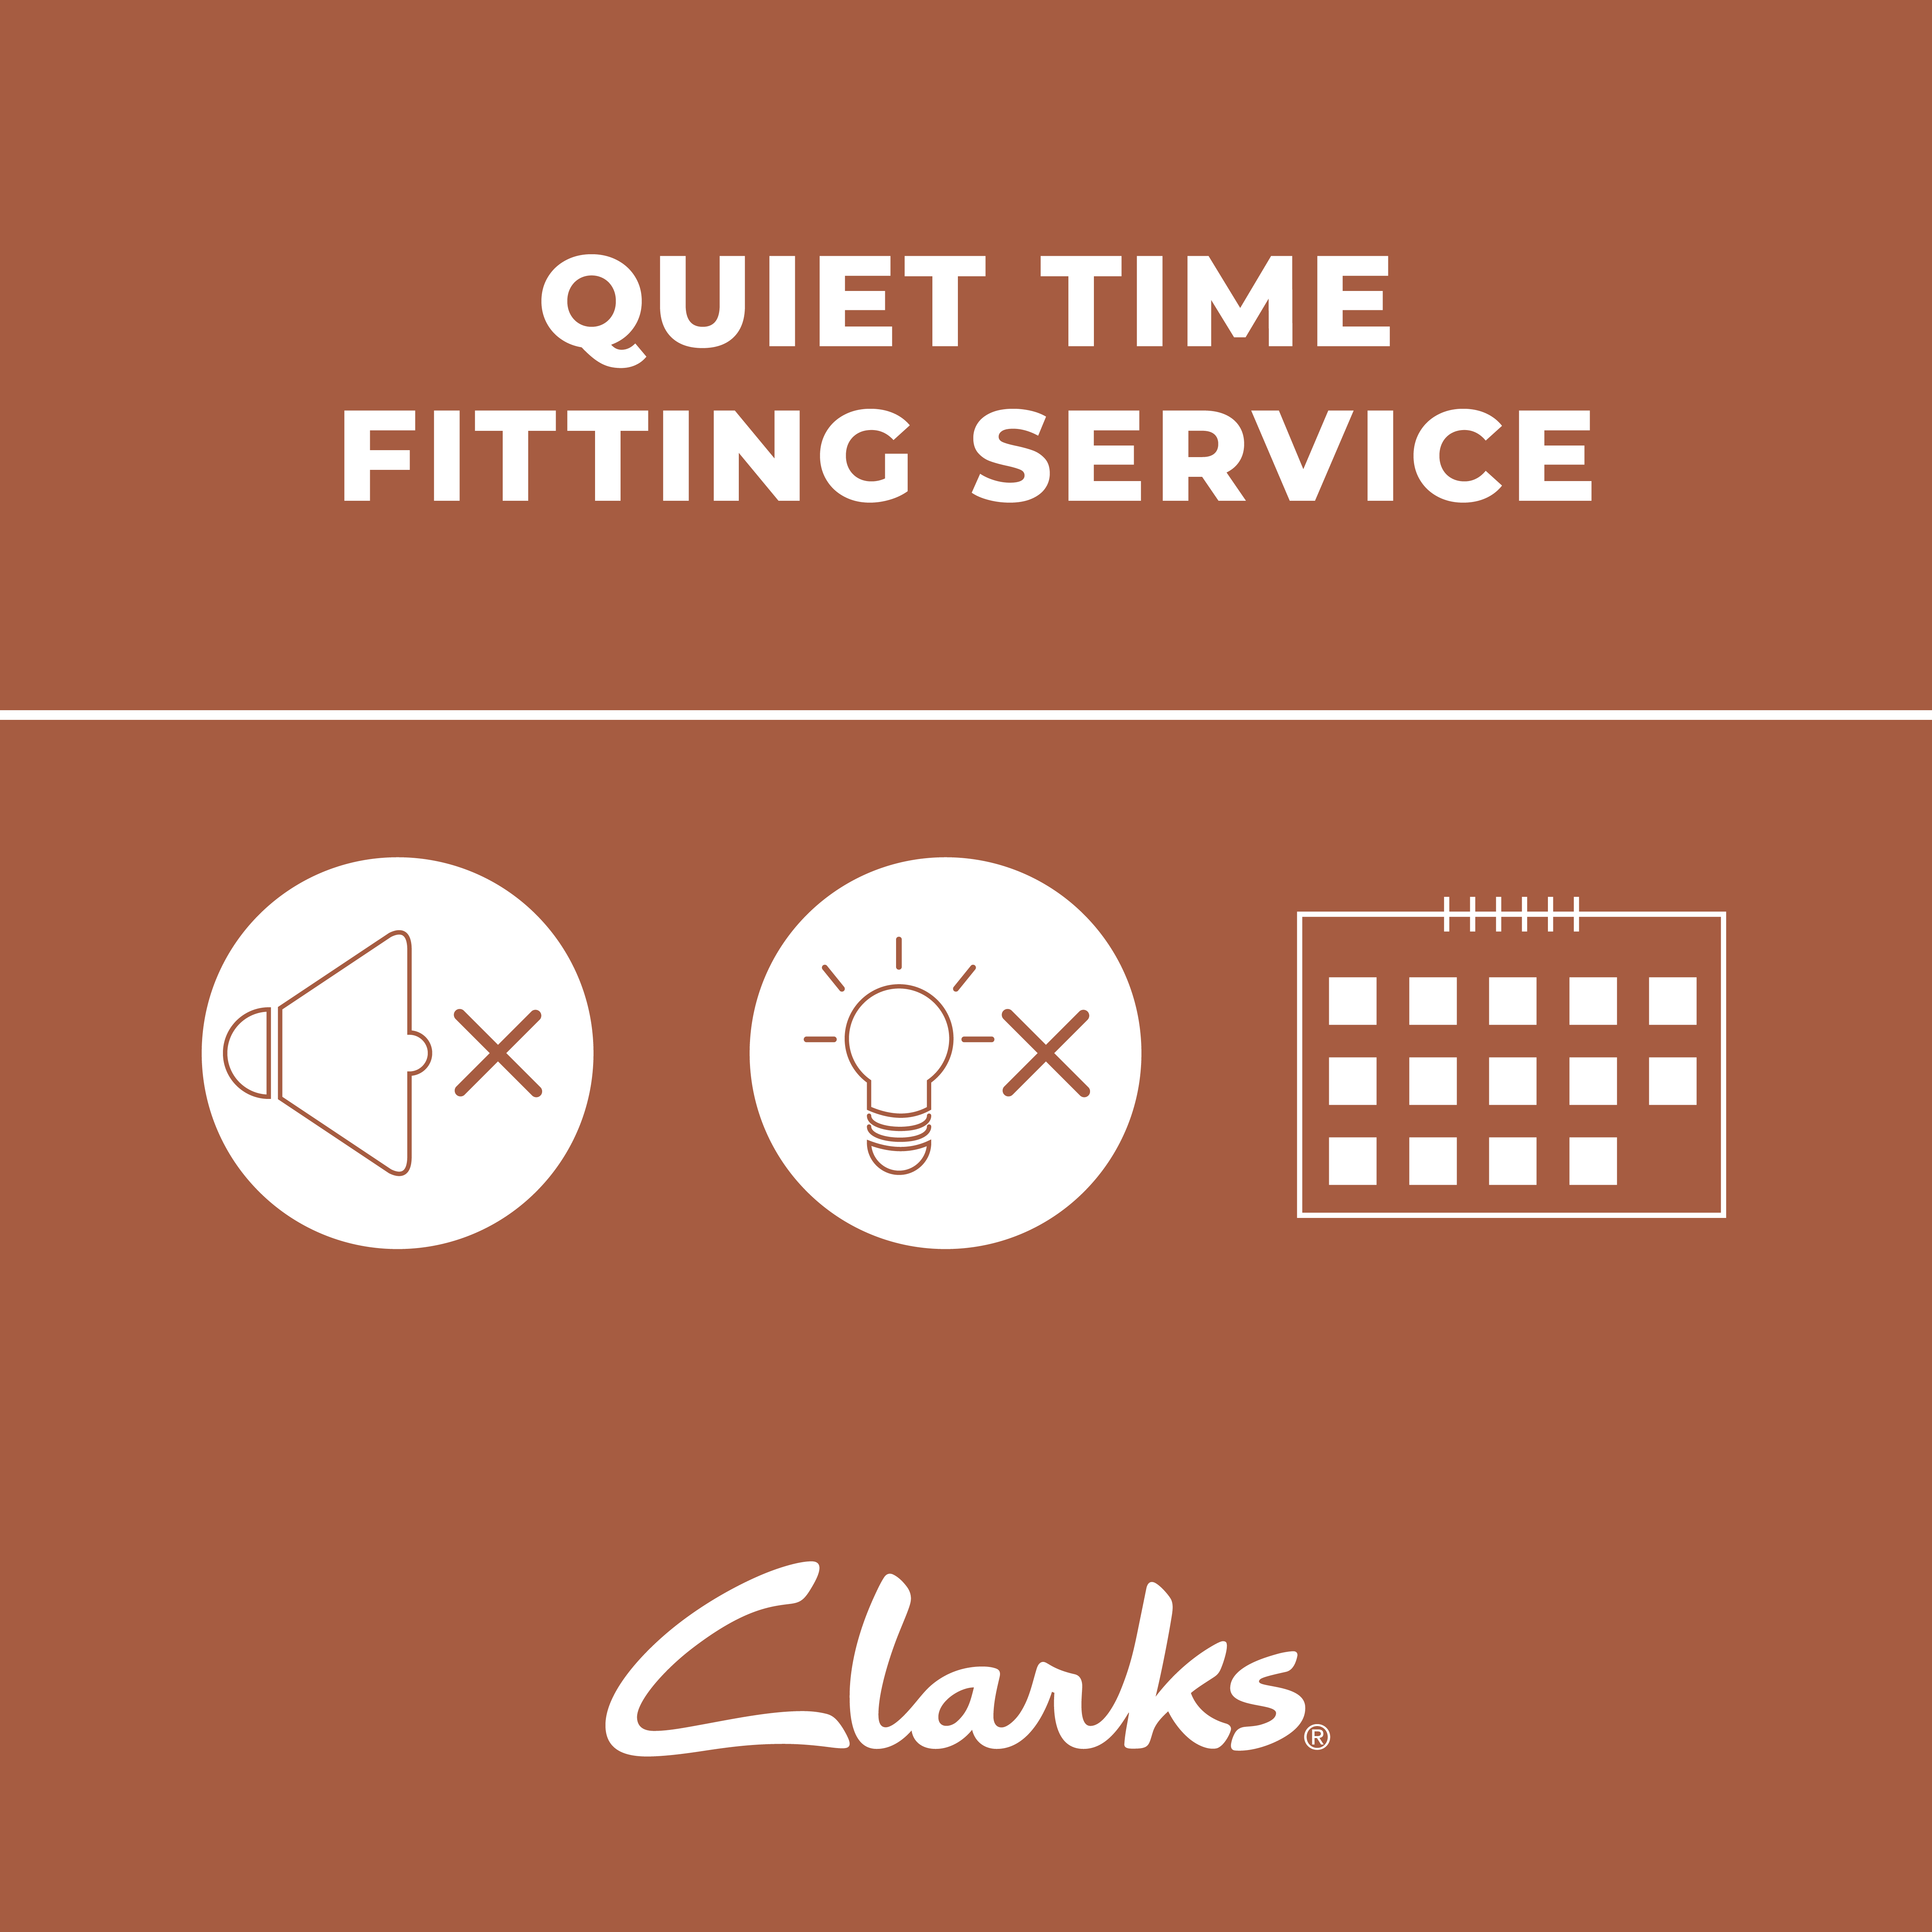 Quiet time appointments at Clarks